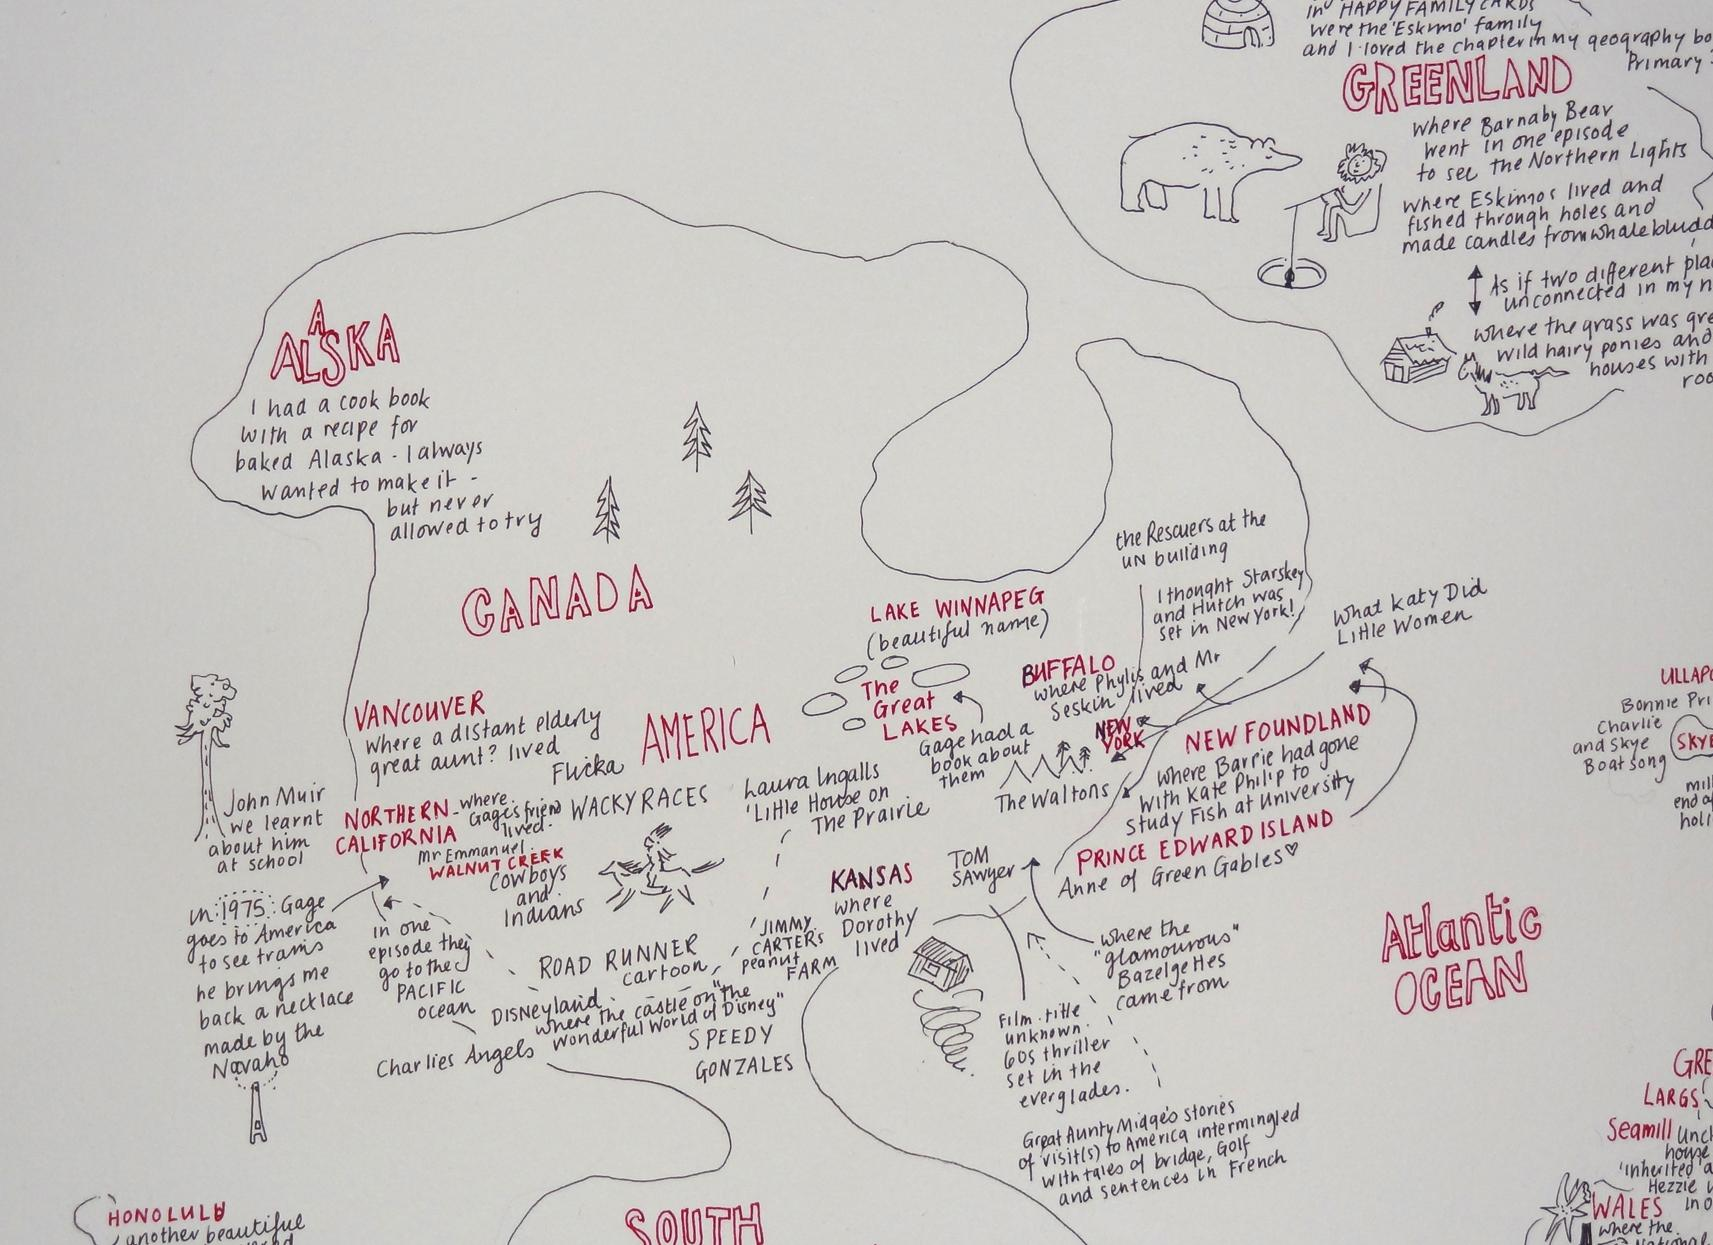 London - Places I Recall, Now Gone / Imaginary Map / The World As I Knew it as a Child - image 4 - student project